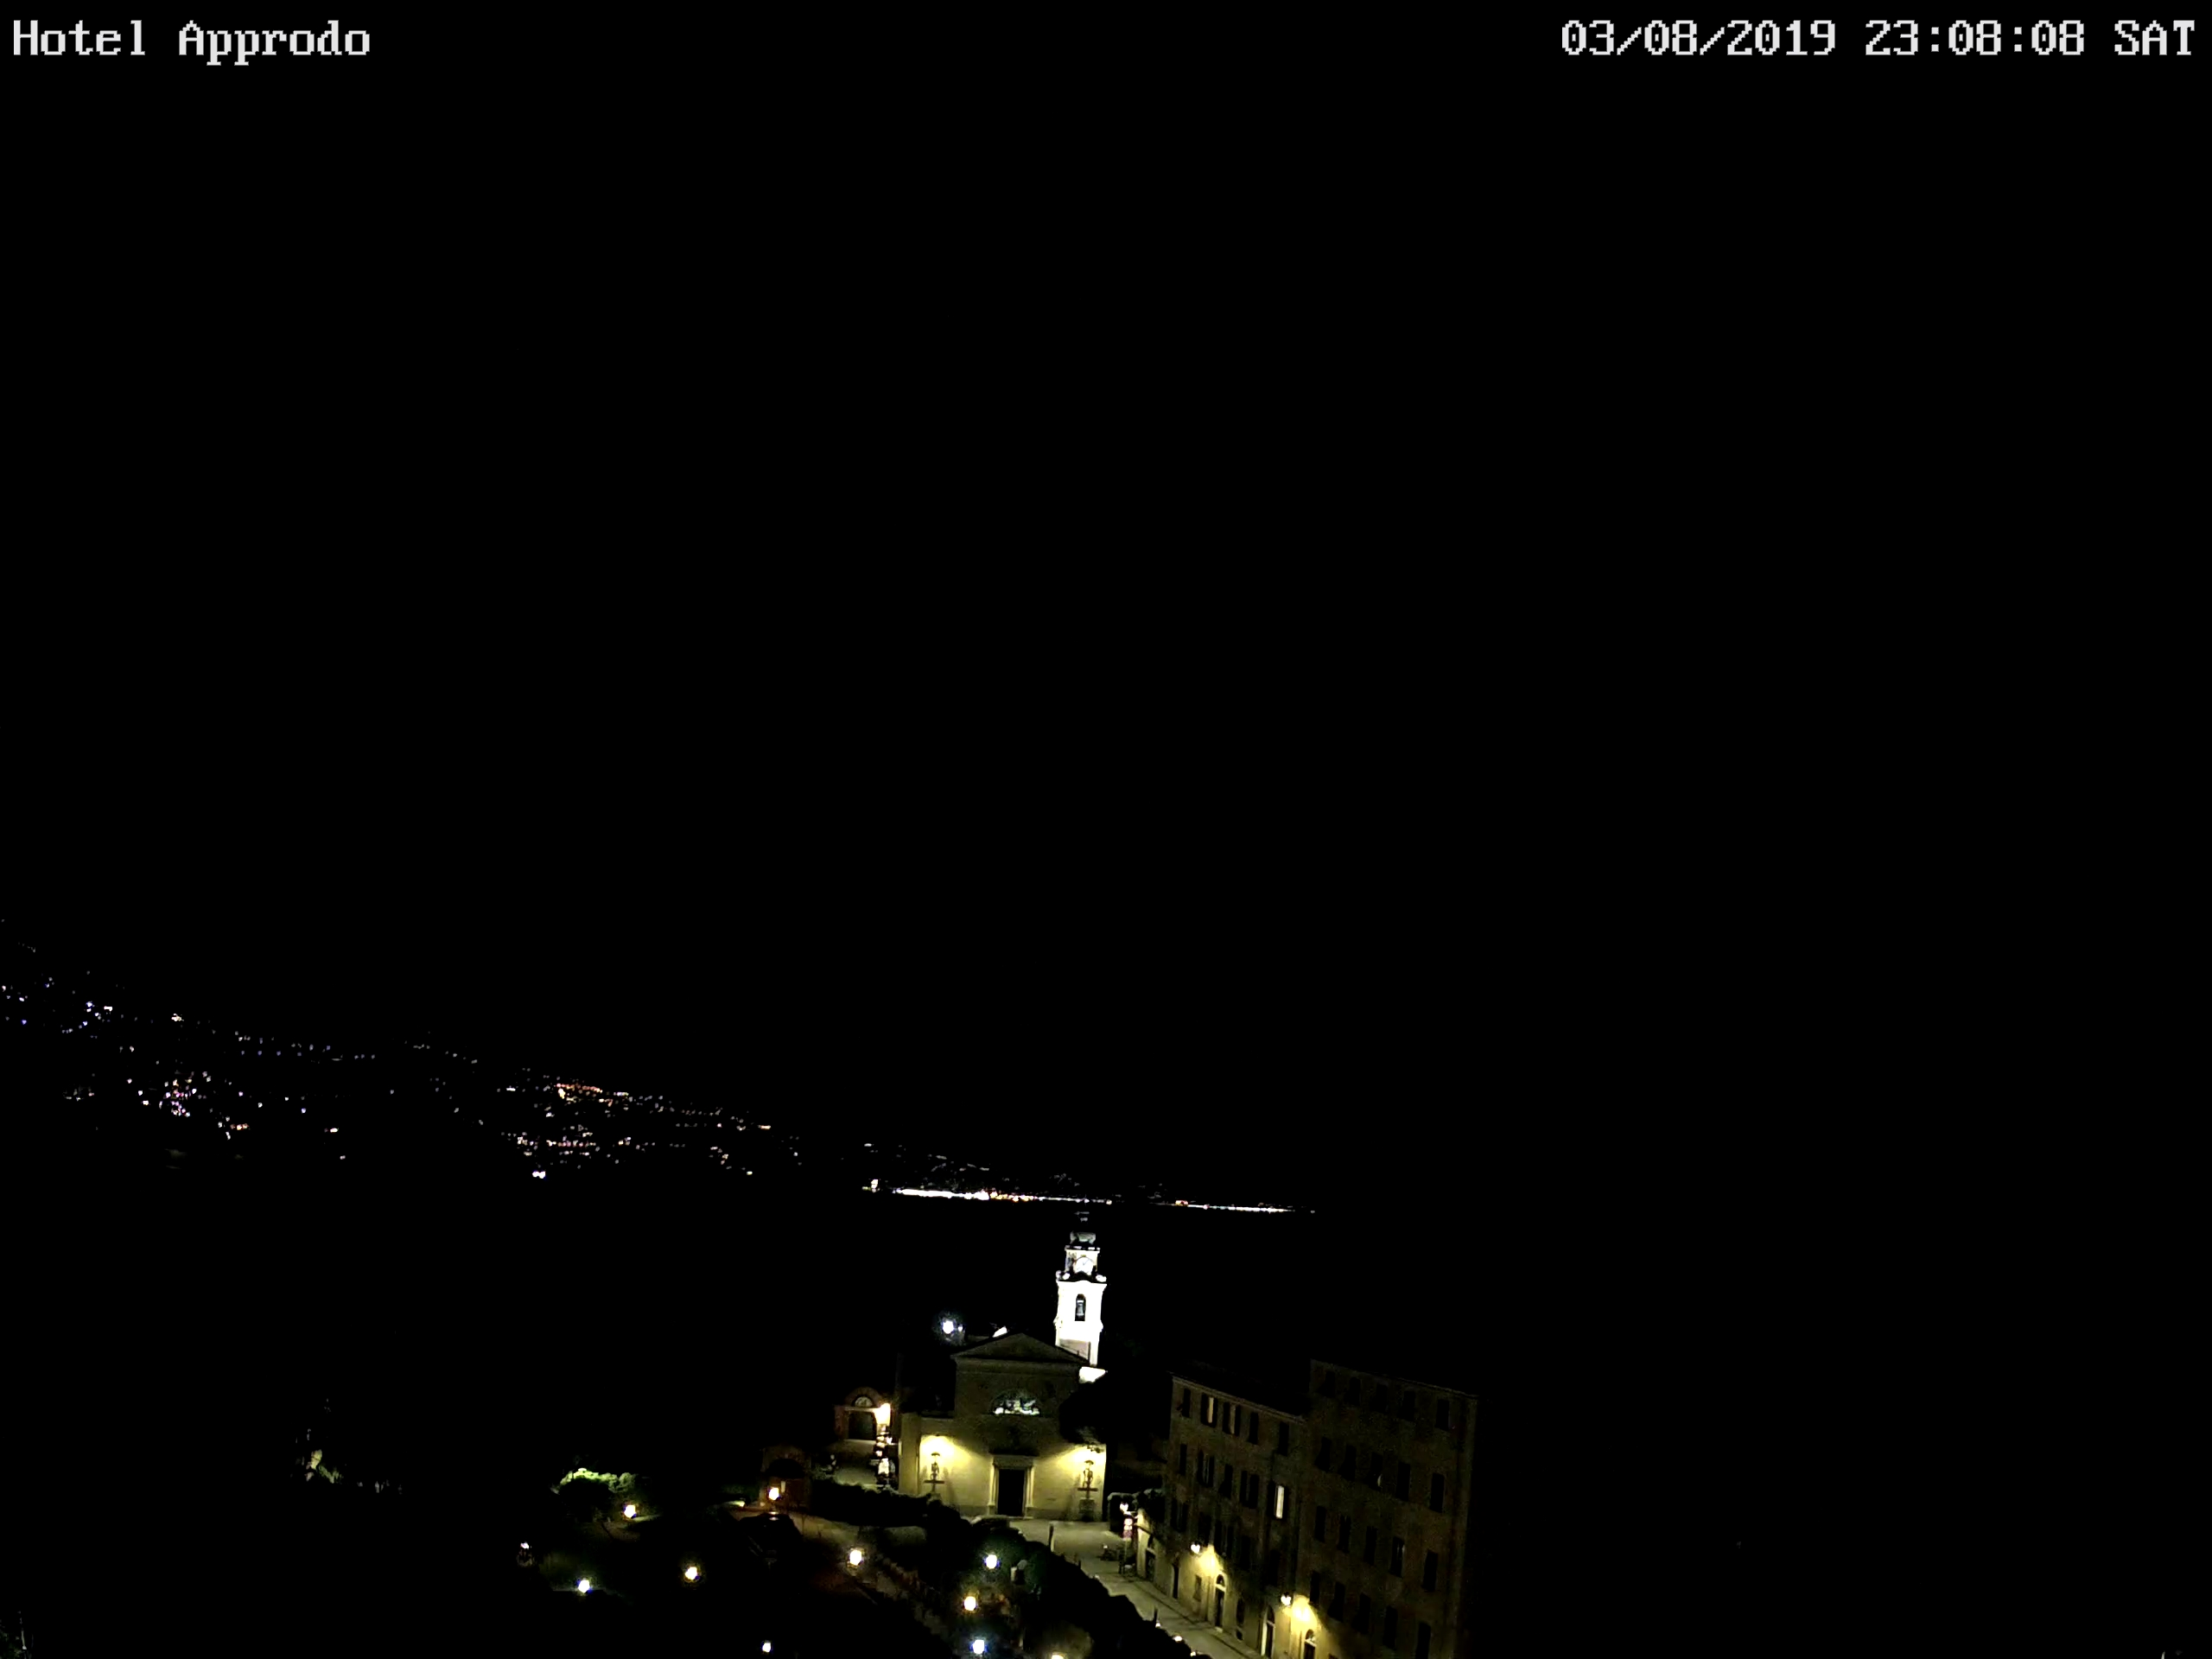 Webcam Hotel Approdo Rapallo